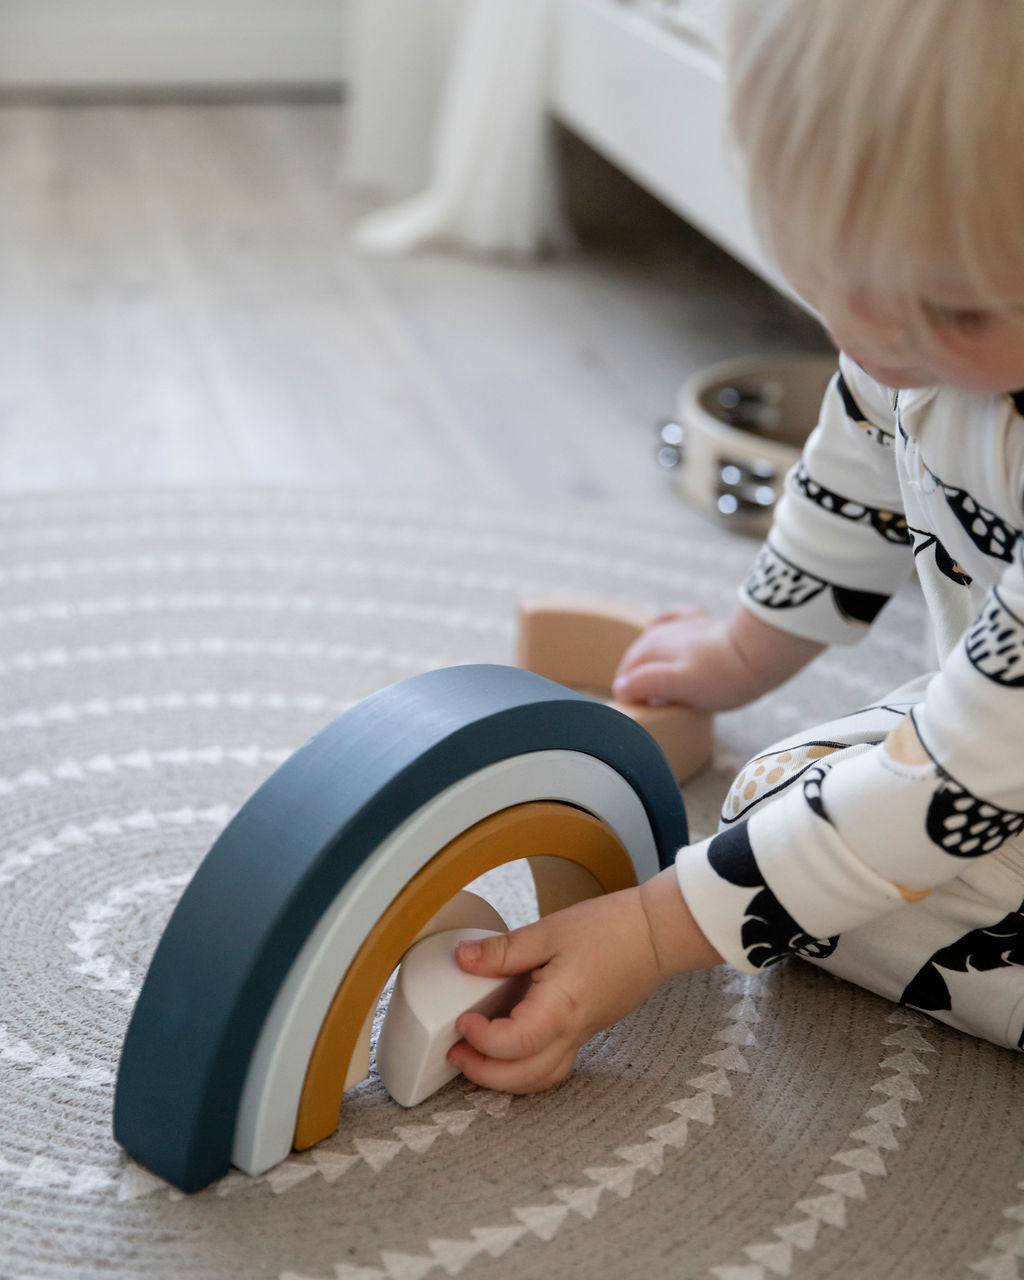 Boy playing with wooden rainbow stackable toy on bedroom floor.